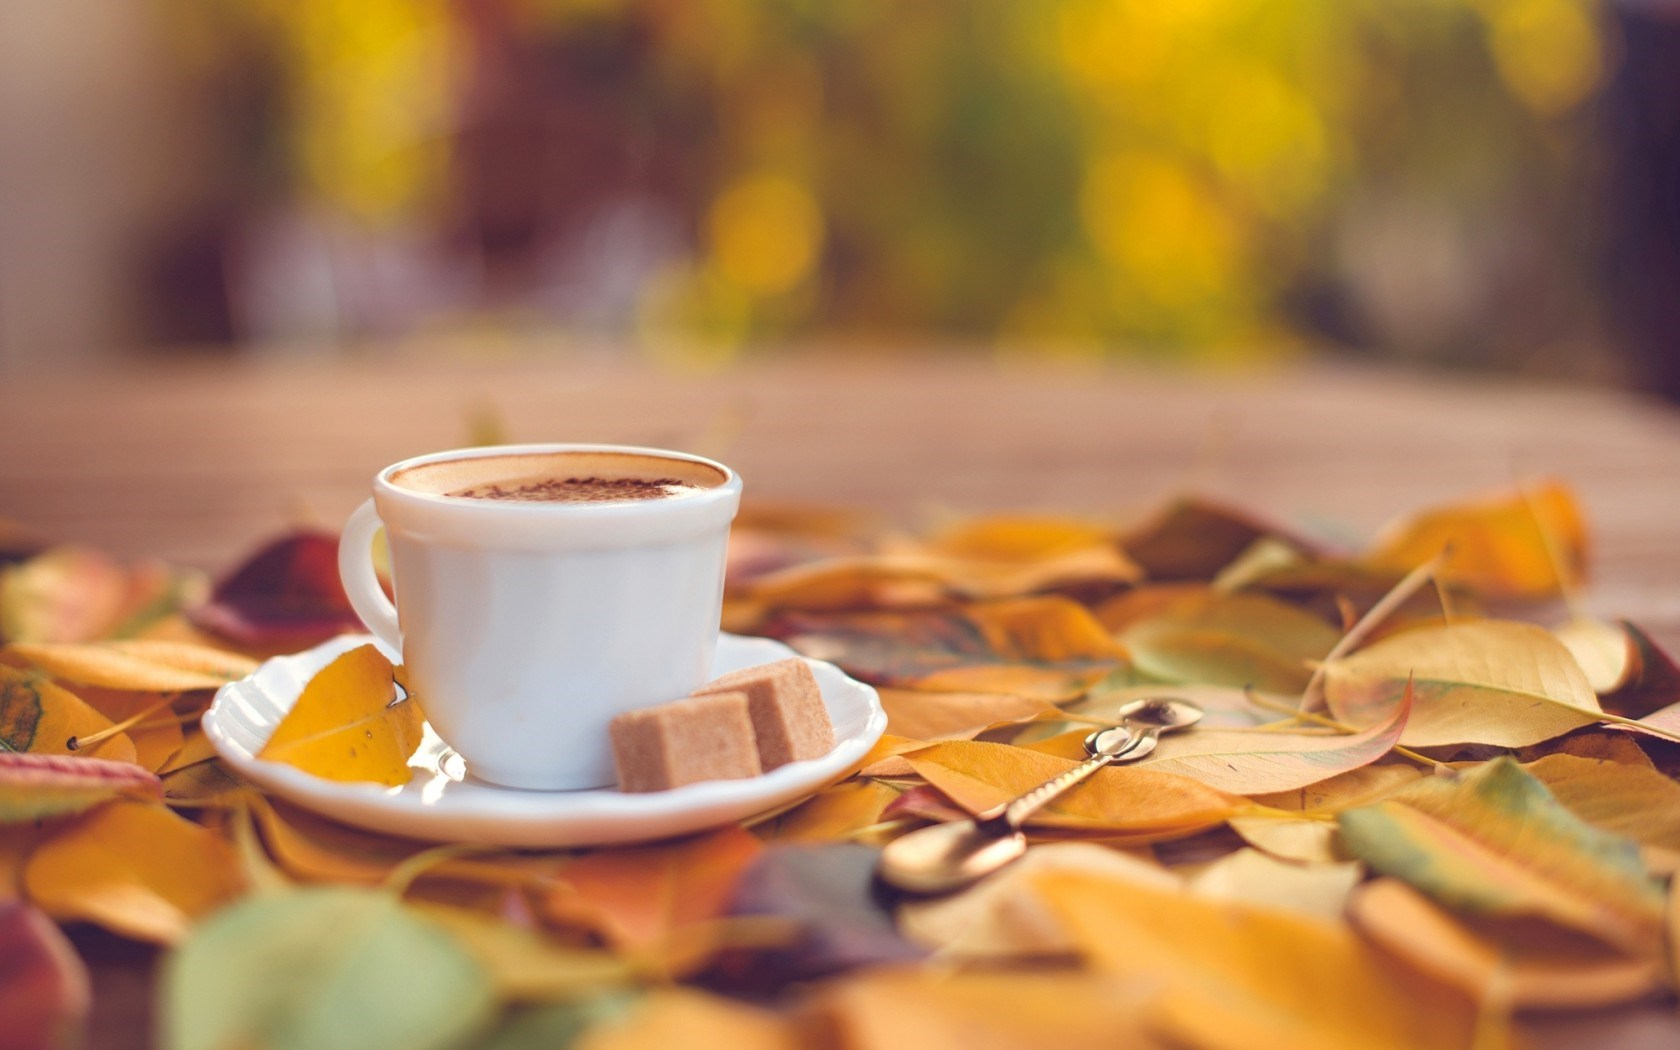 Fall Wallpaper Pintrest 20 Lovely Hd Coffee Wallpapers